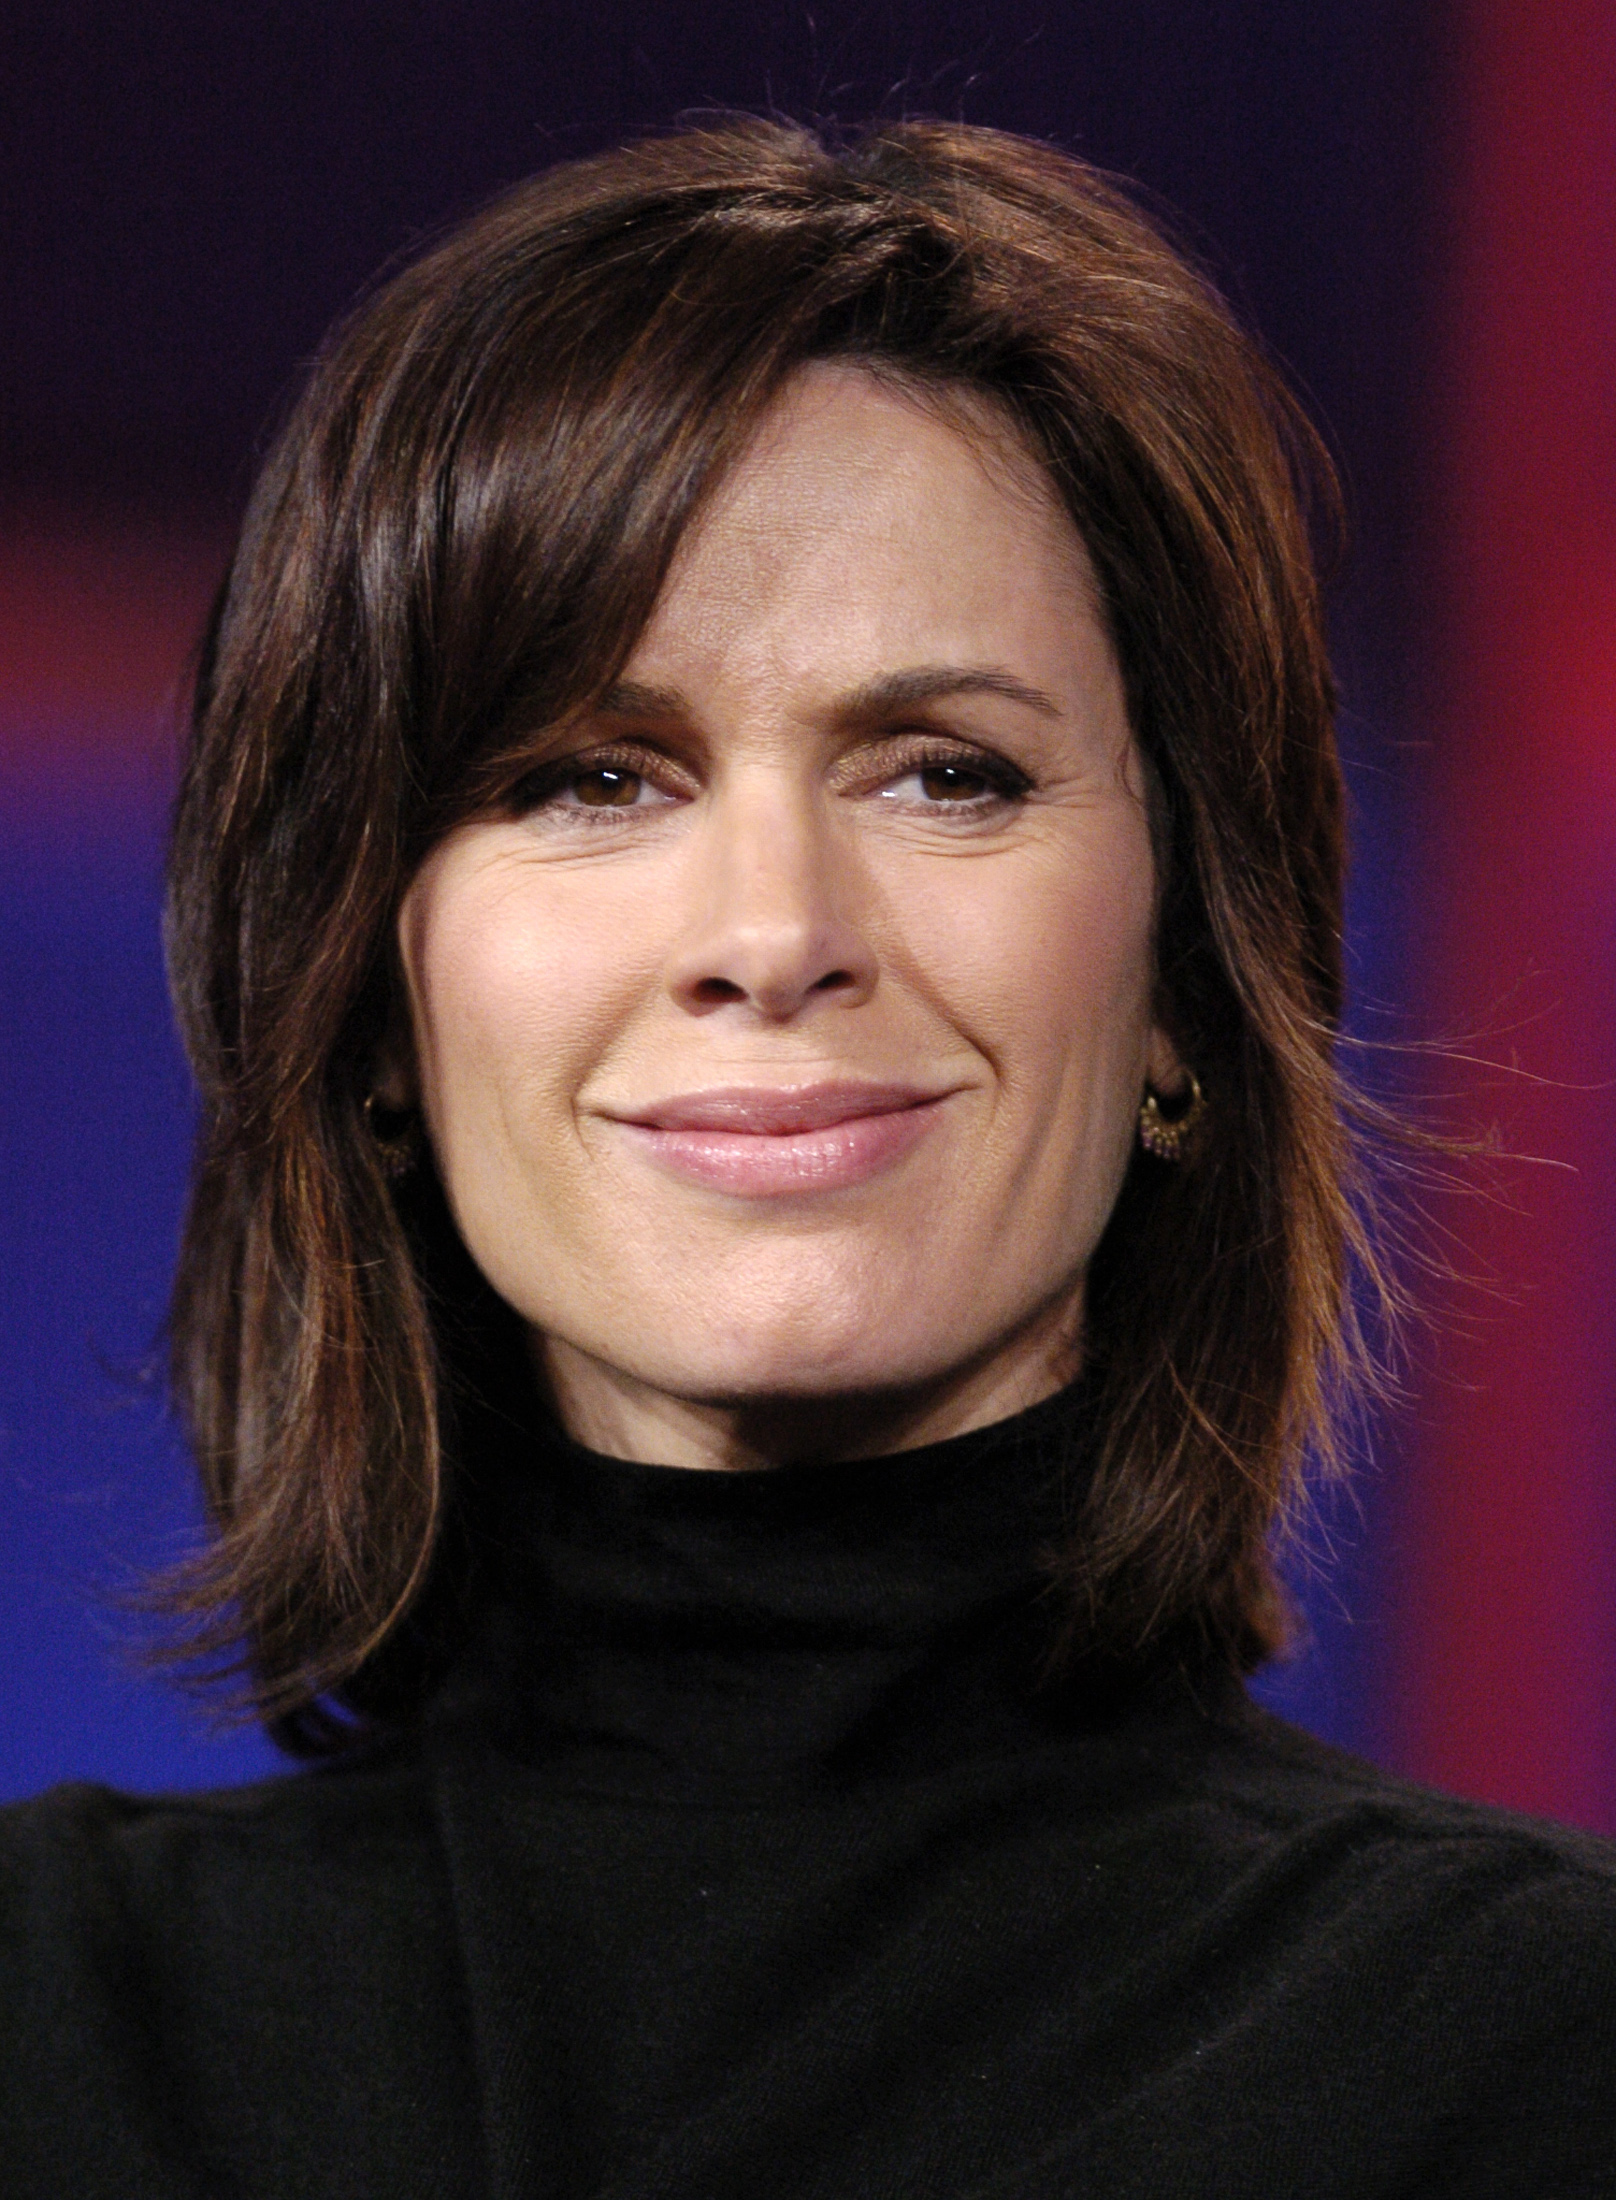 elizabeth vargas. elizabeth vargas returns to rehab for alcohol dependency, says \u0027i am ashamed and sorry\u0027